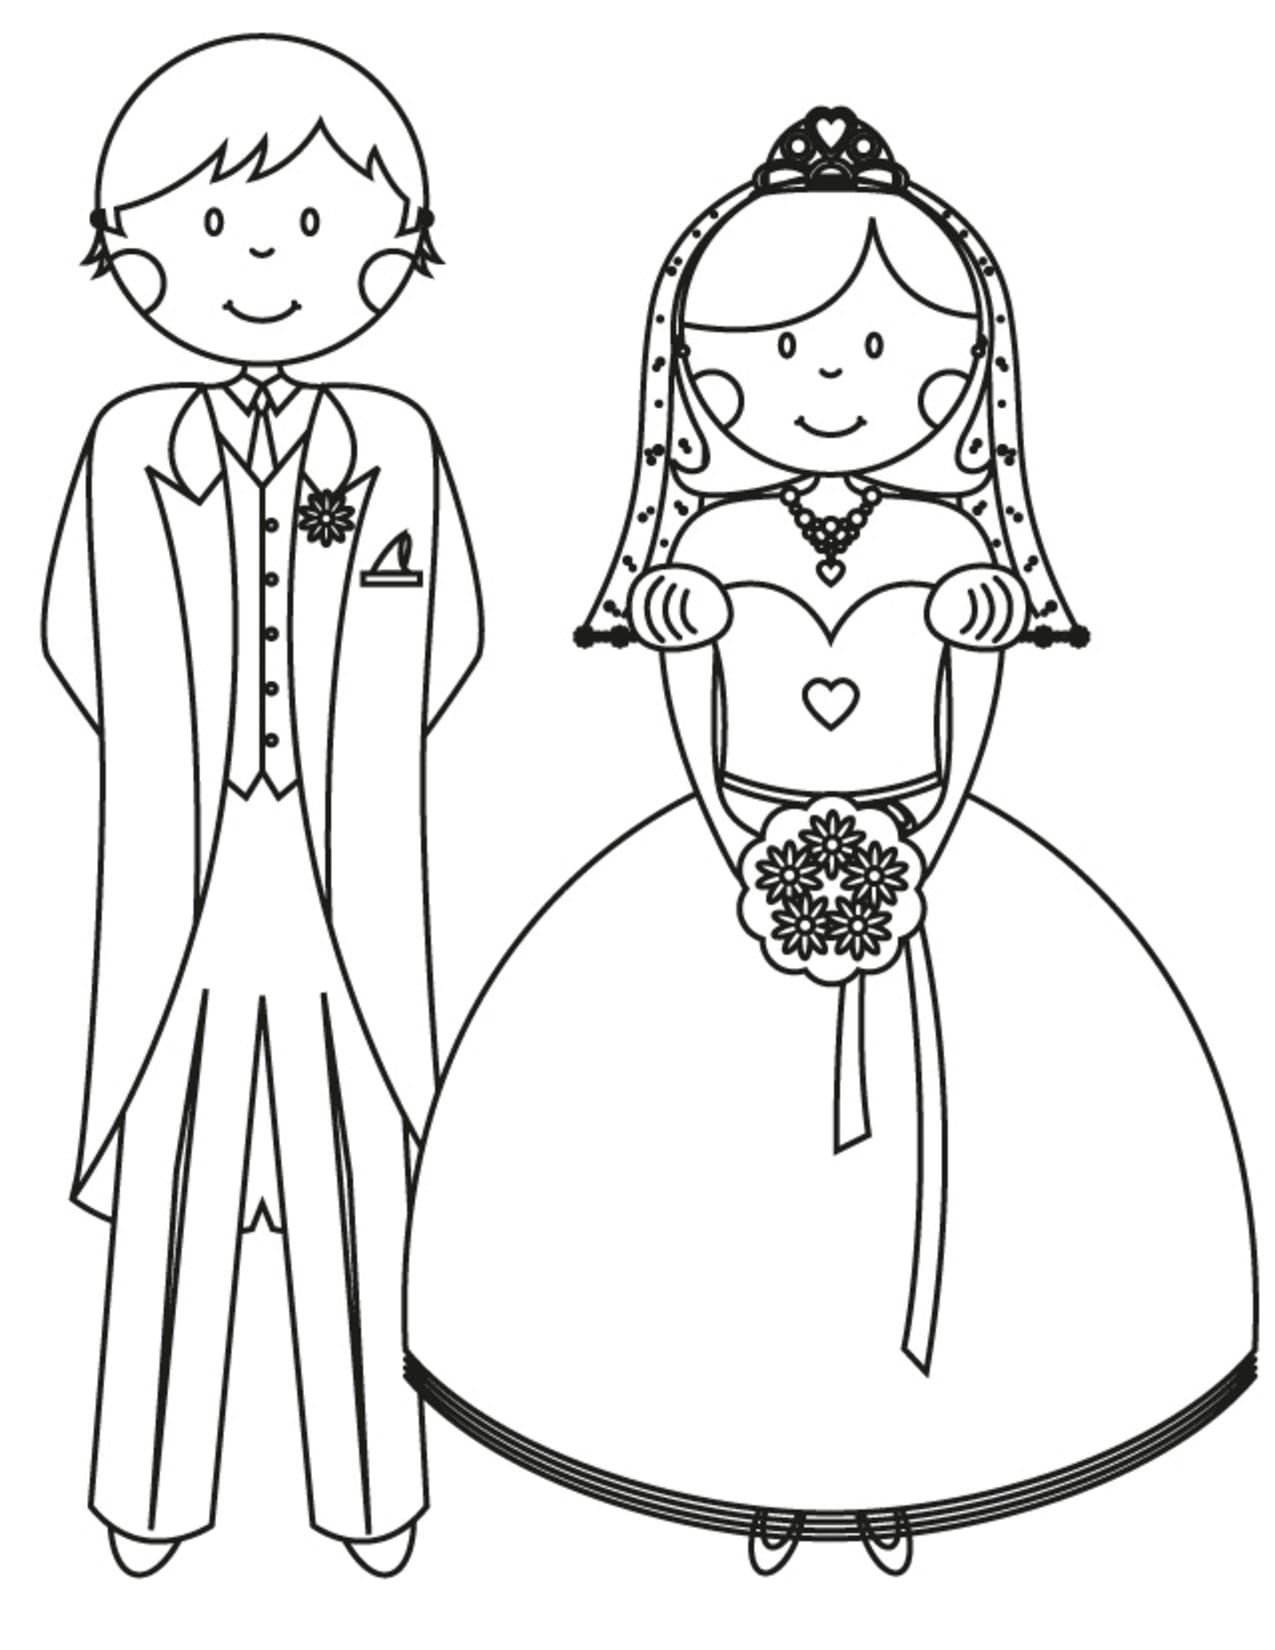 Www Sheknows Com Parenting Slideshow 516 Wedding Coloring Pages Bride And Groom Wedding Coloring Pages Wedding With Kids Kids Wedding Activities